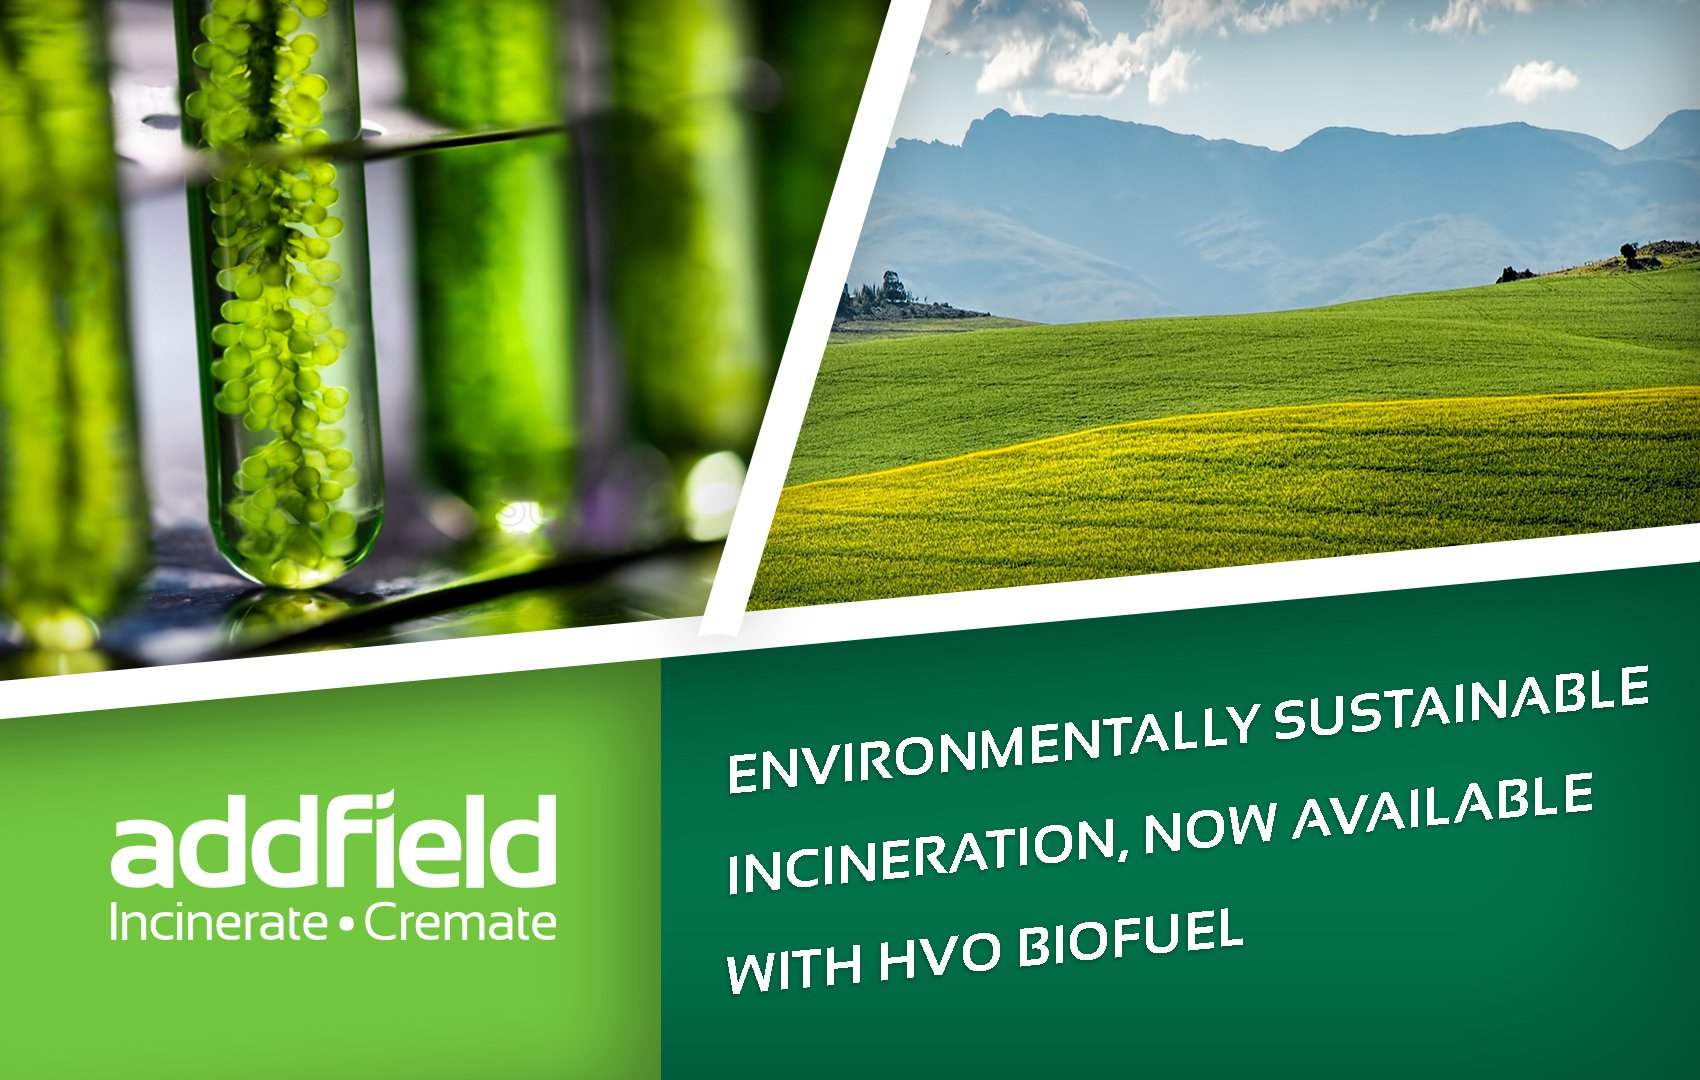 Environmentally sustainable incineration Now available with HVO BioFuel